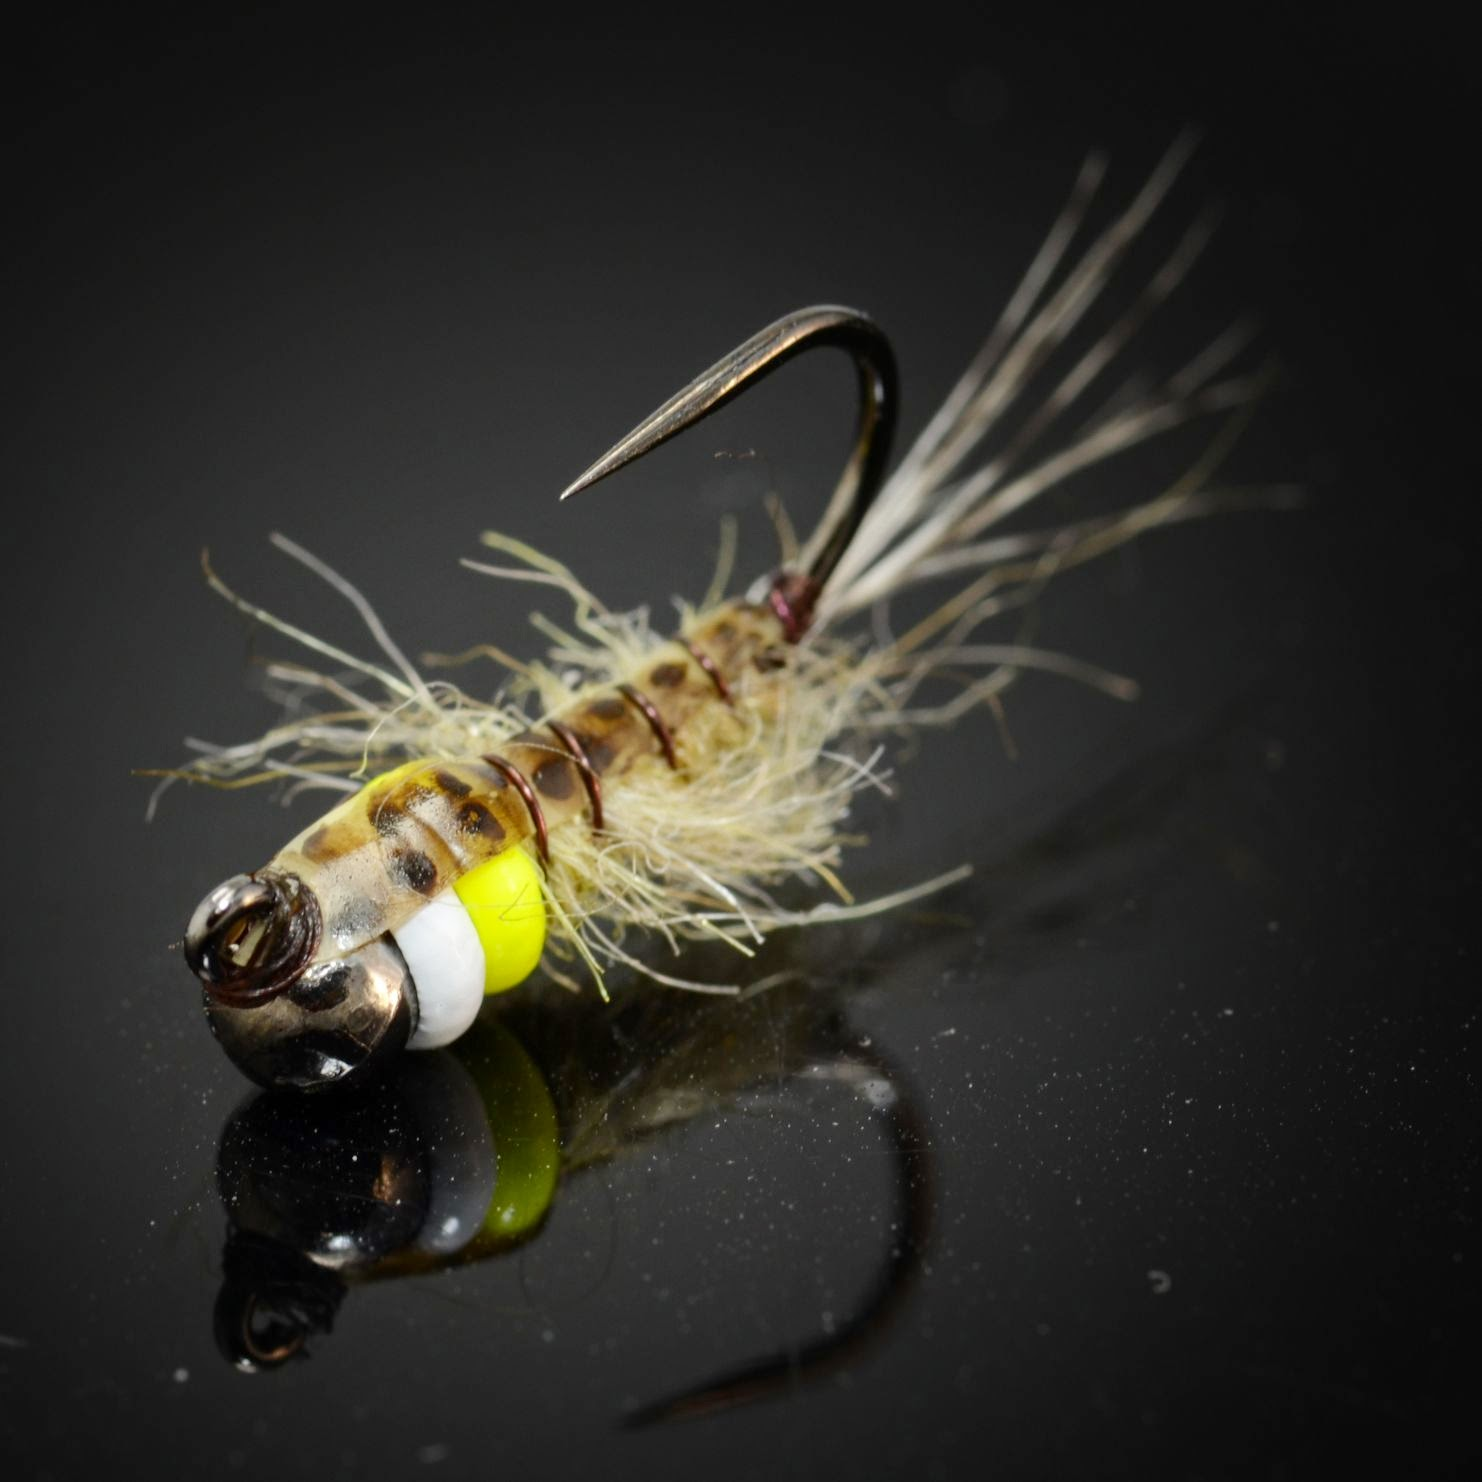 Fly fish food fly tying and fly fishing july 2014 for Fly fish food